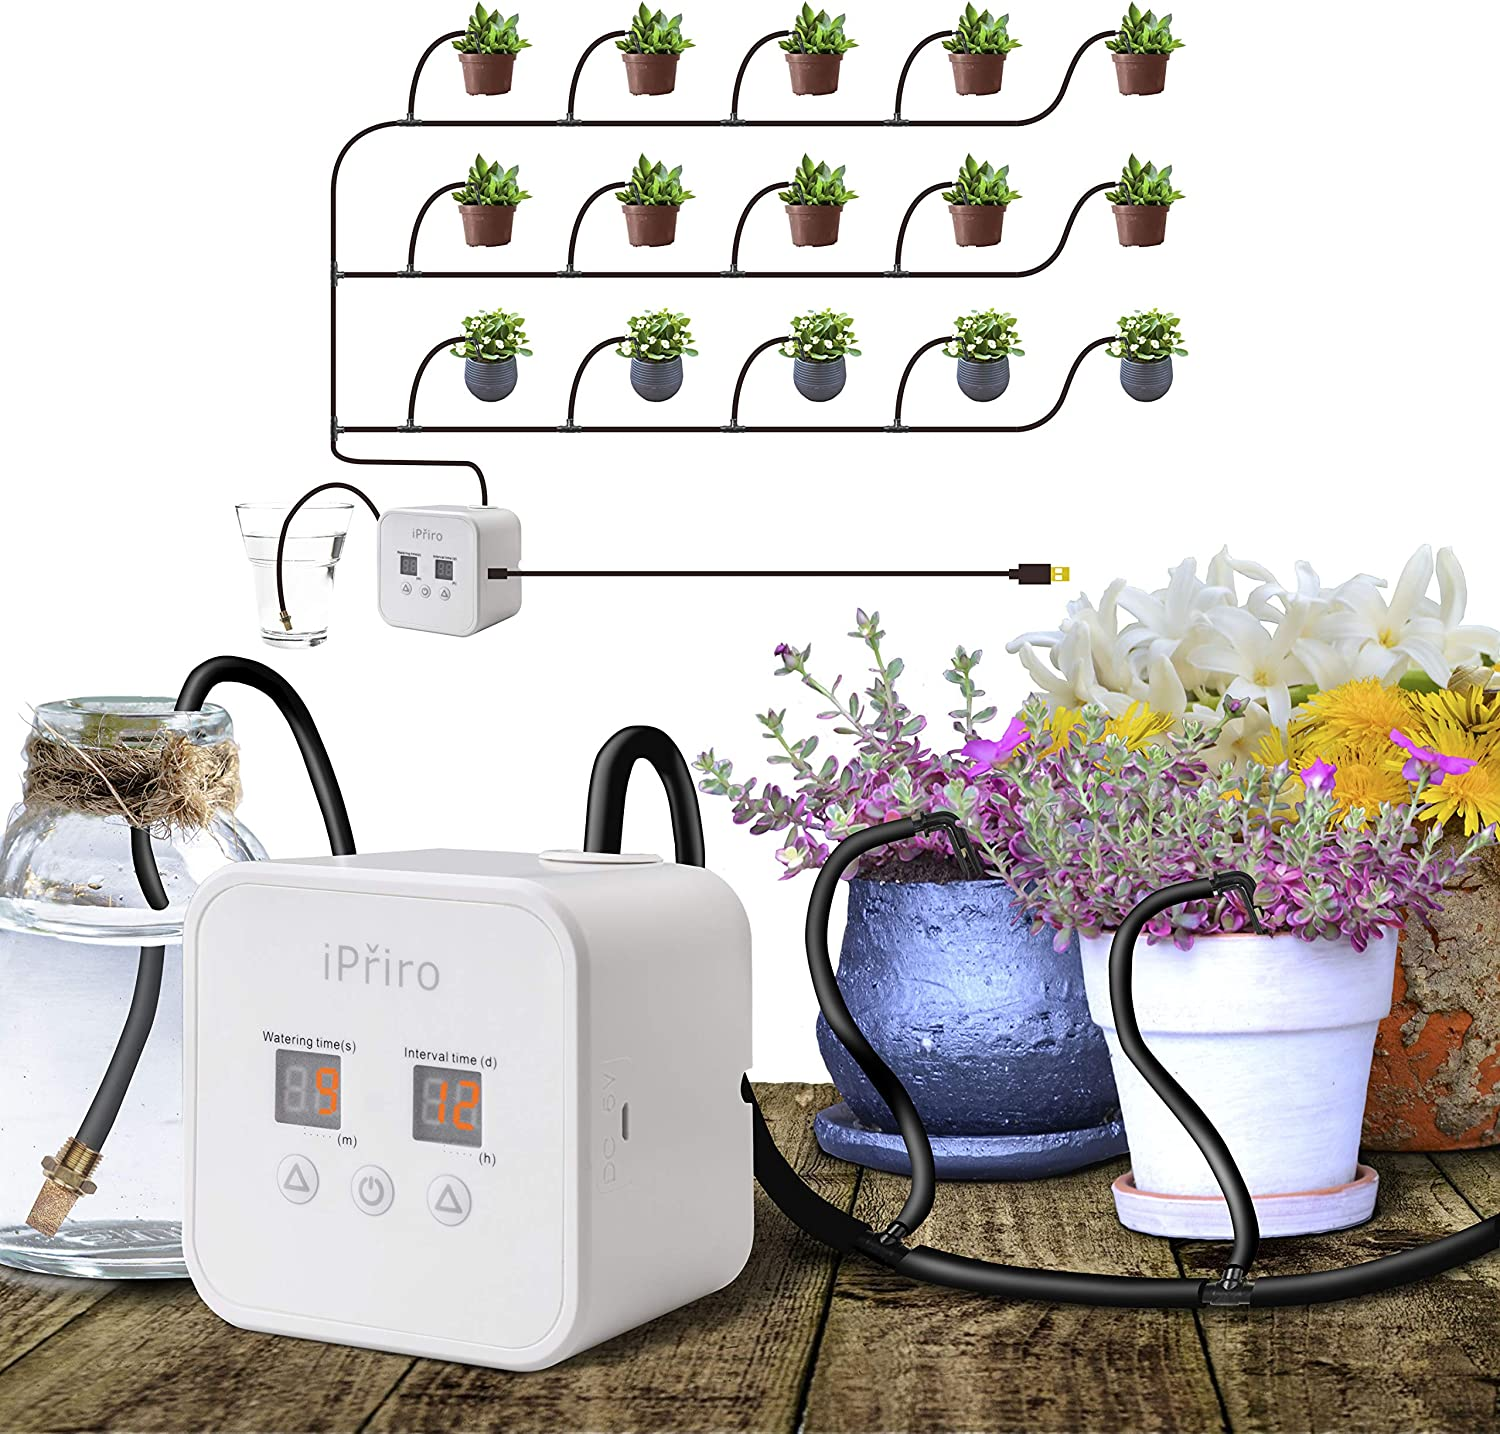 iPřiro Houseplants Automatic Watering System,Automated Watering Device with 30-Day Programmable Timer and 5V USB Charging Cable, for 15 Potted Plants Indoor